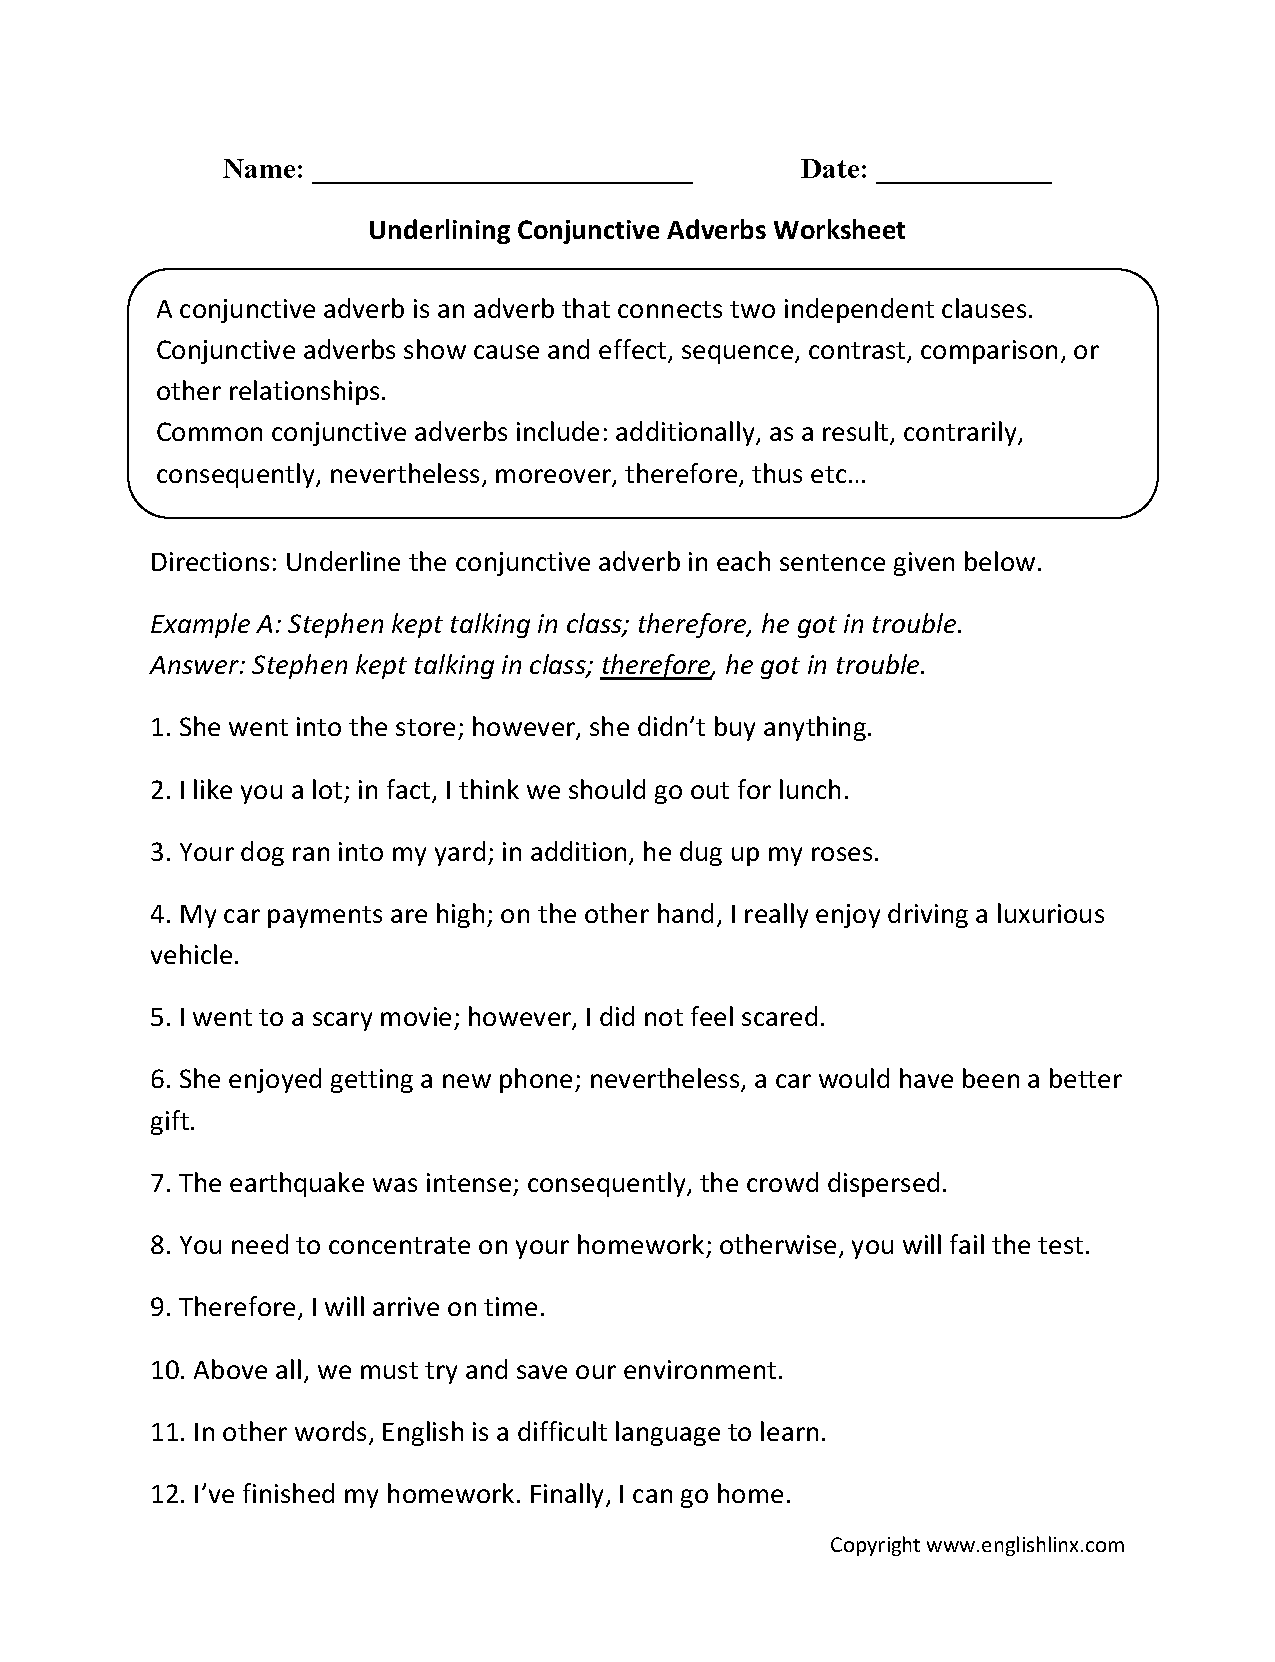 Weirdmailus  Marvelous Englishlinxcom  Conjunctions Worksheets With Exciting Worksheet With Comely Easy Social Studies Worksheets Also Easter Themed Math Worksheets In Addition Patterning Worksheets Grade  And Free English Grammar Worksheets For Grade  As Well As Worksheets On The Heart Additionally Grade  English Worksheets From Englishlinxcom With Weirdmailus  Exciting Englishlinxcom  Conjunctions Worksheets With Comely Worksheet And Marvelous Easy Social Studies Worksheets Also Easter Themed Math Worksheets In Addition Patterning Worksheets Grade  From Englishlinxcom